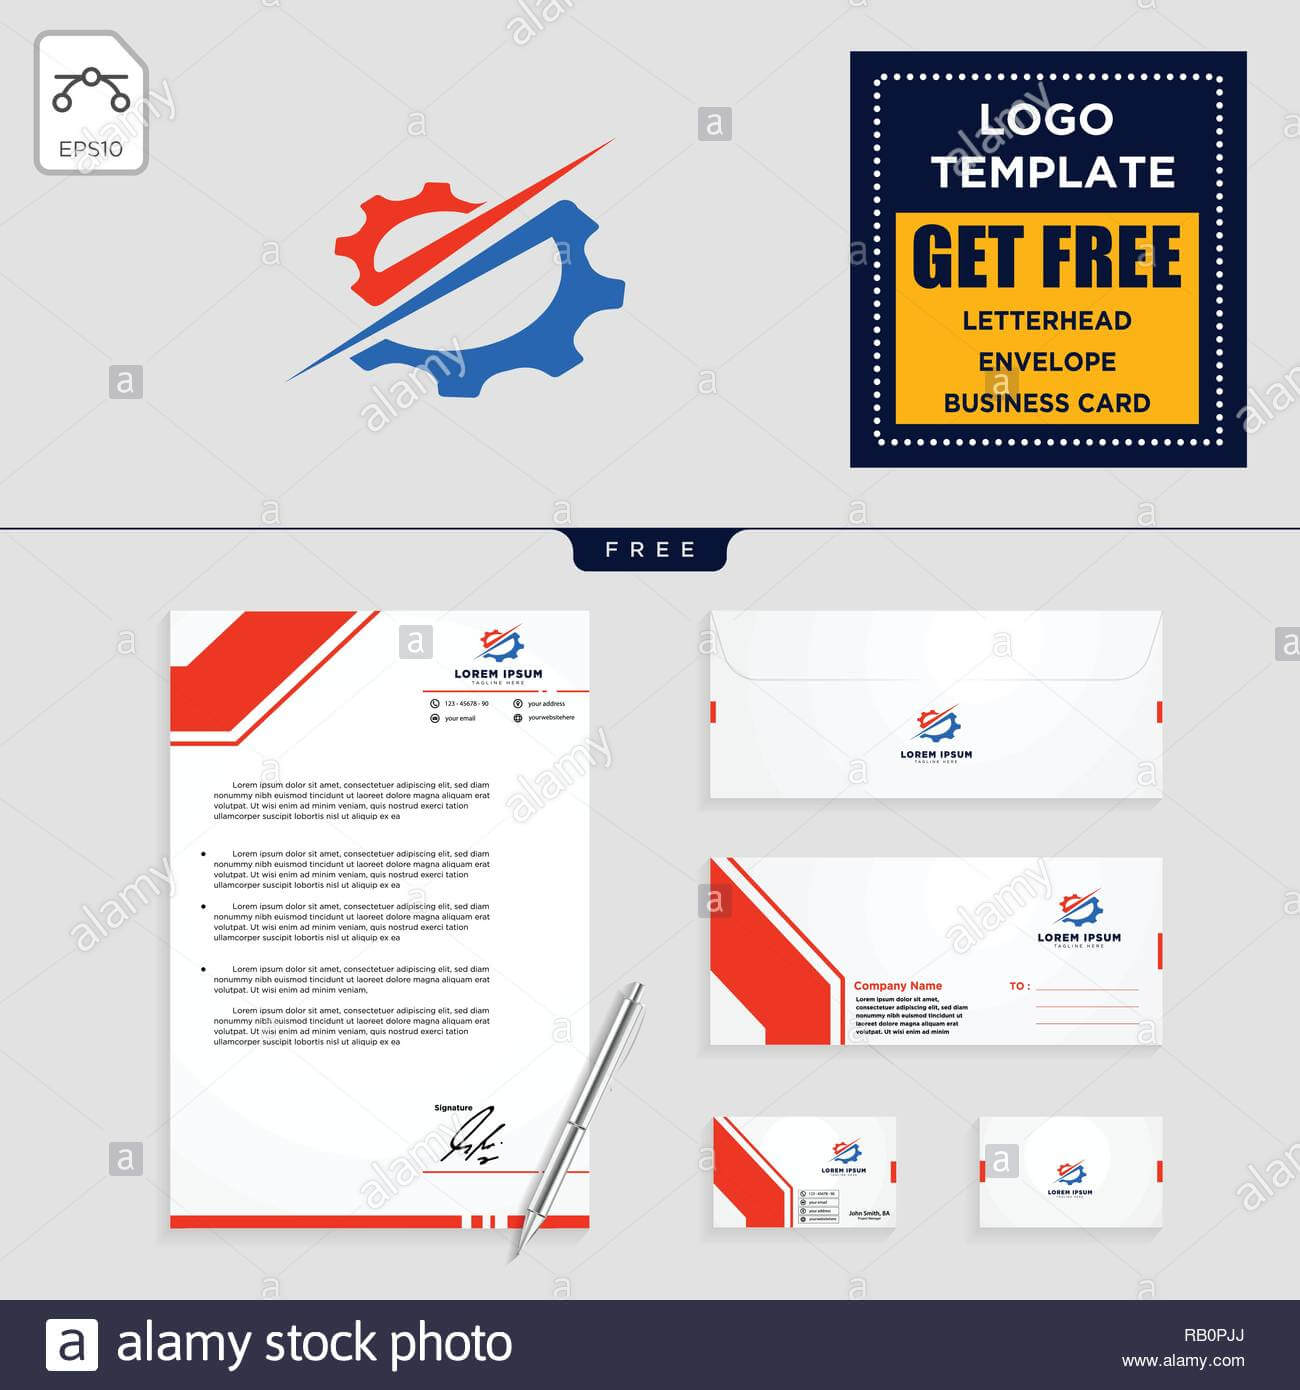 Gear, And Business Chart Logo Template Vector Illustration Throughout Business Card Letterhead Envelope Template